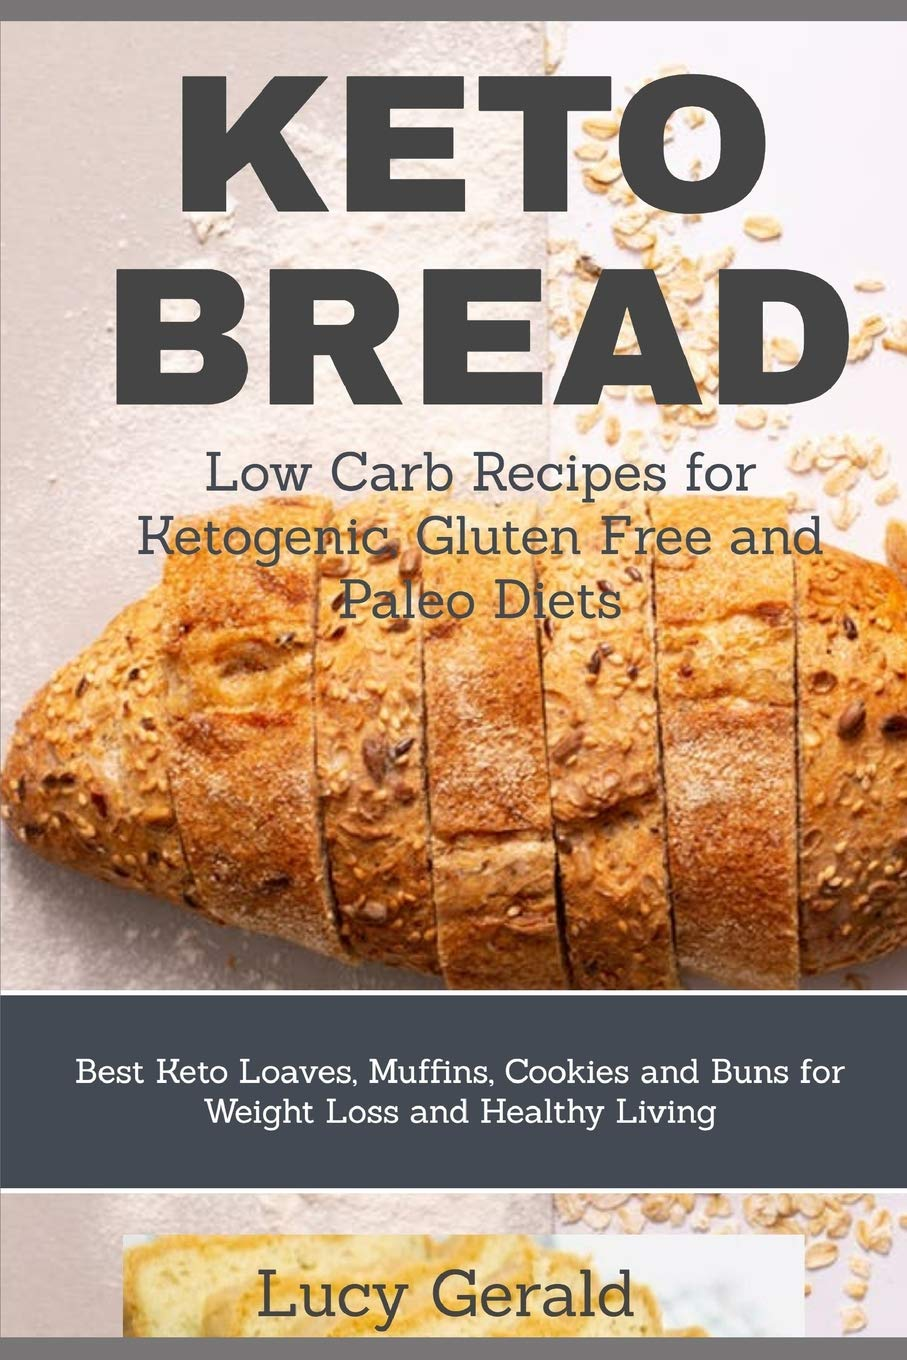 KETO BREAD: Low Carb Recipes for Ketogenic, Gluten Free and